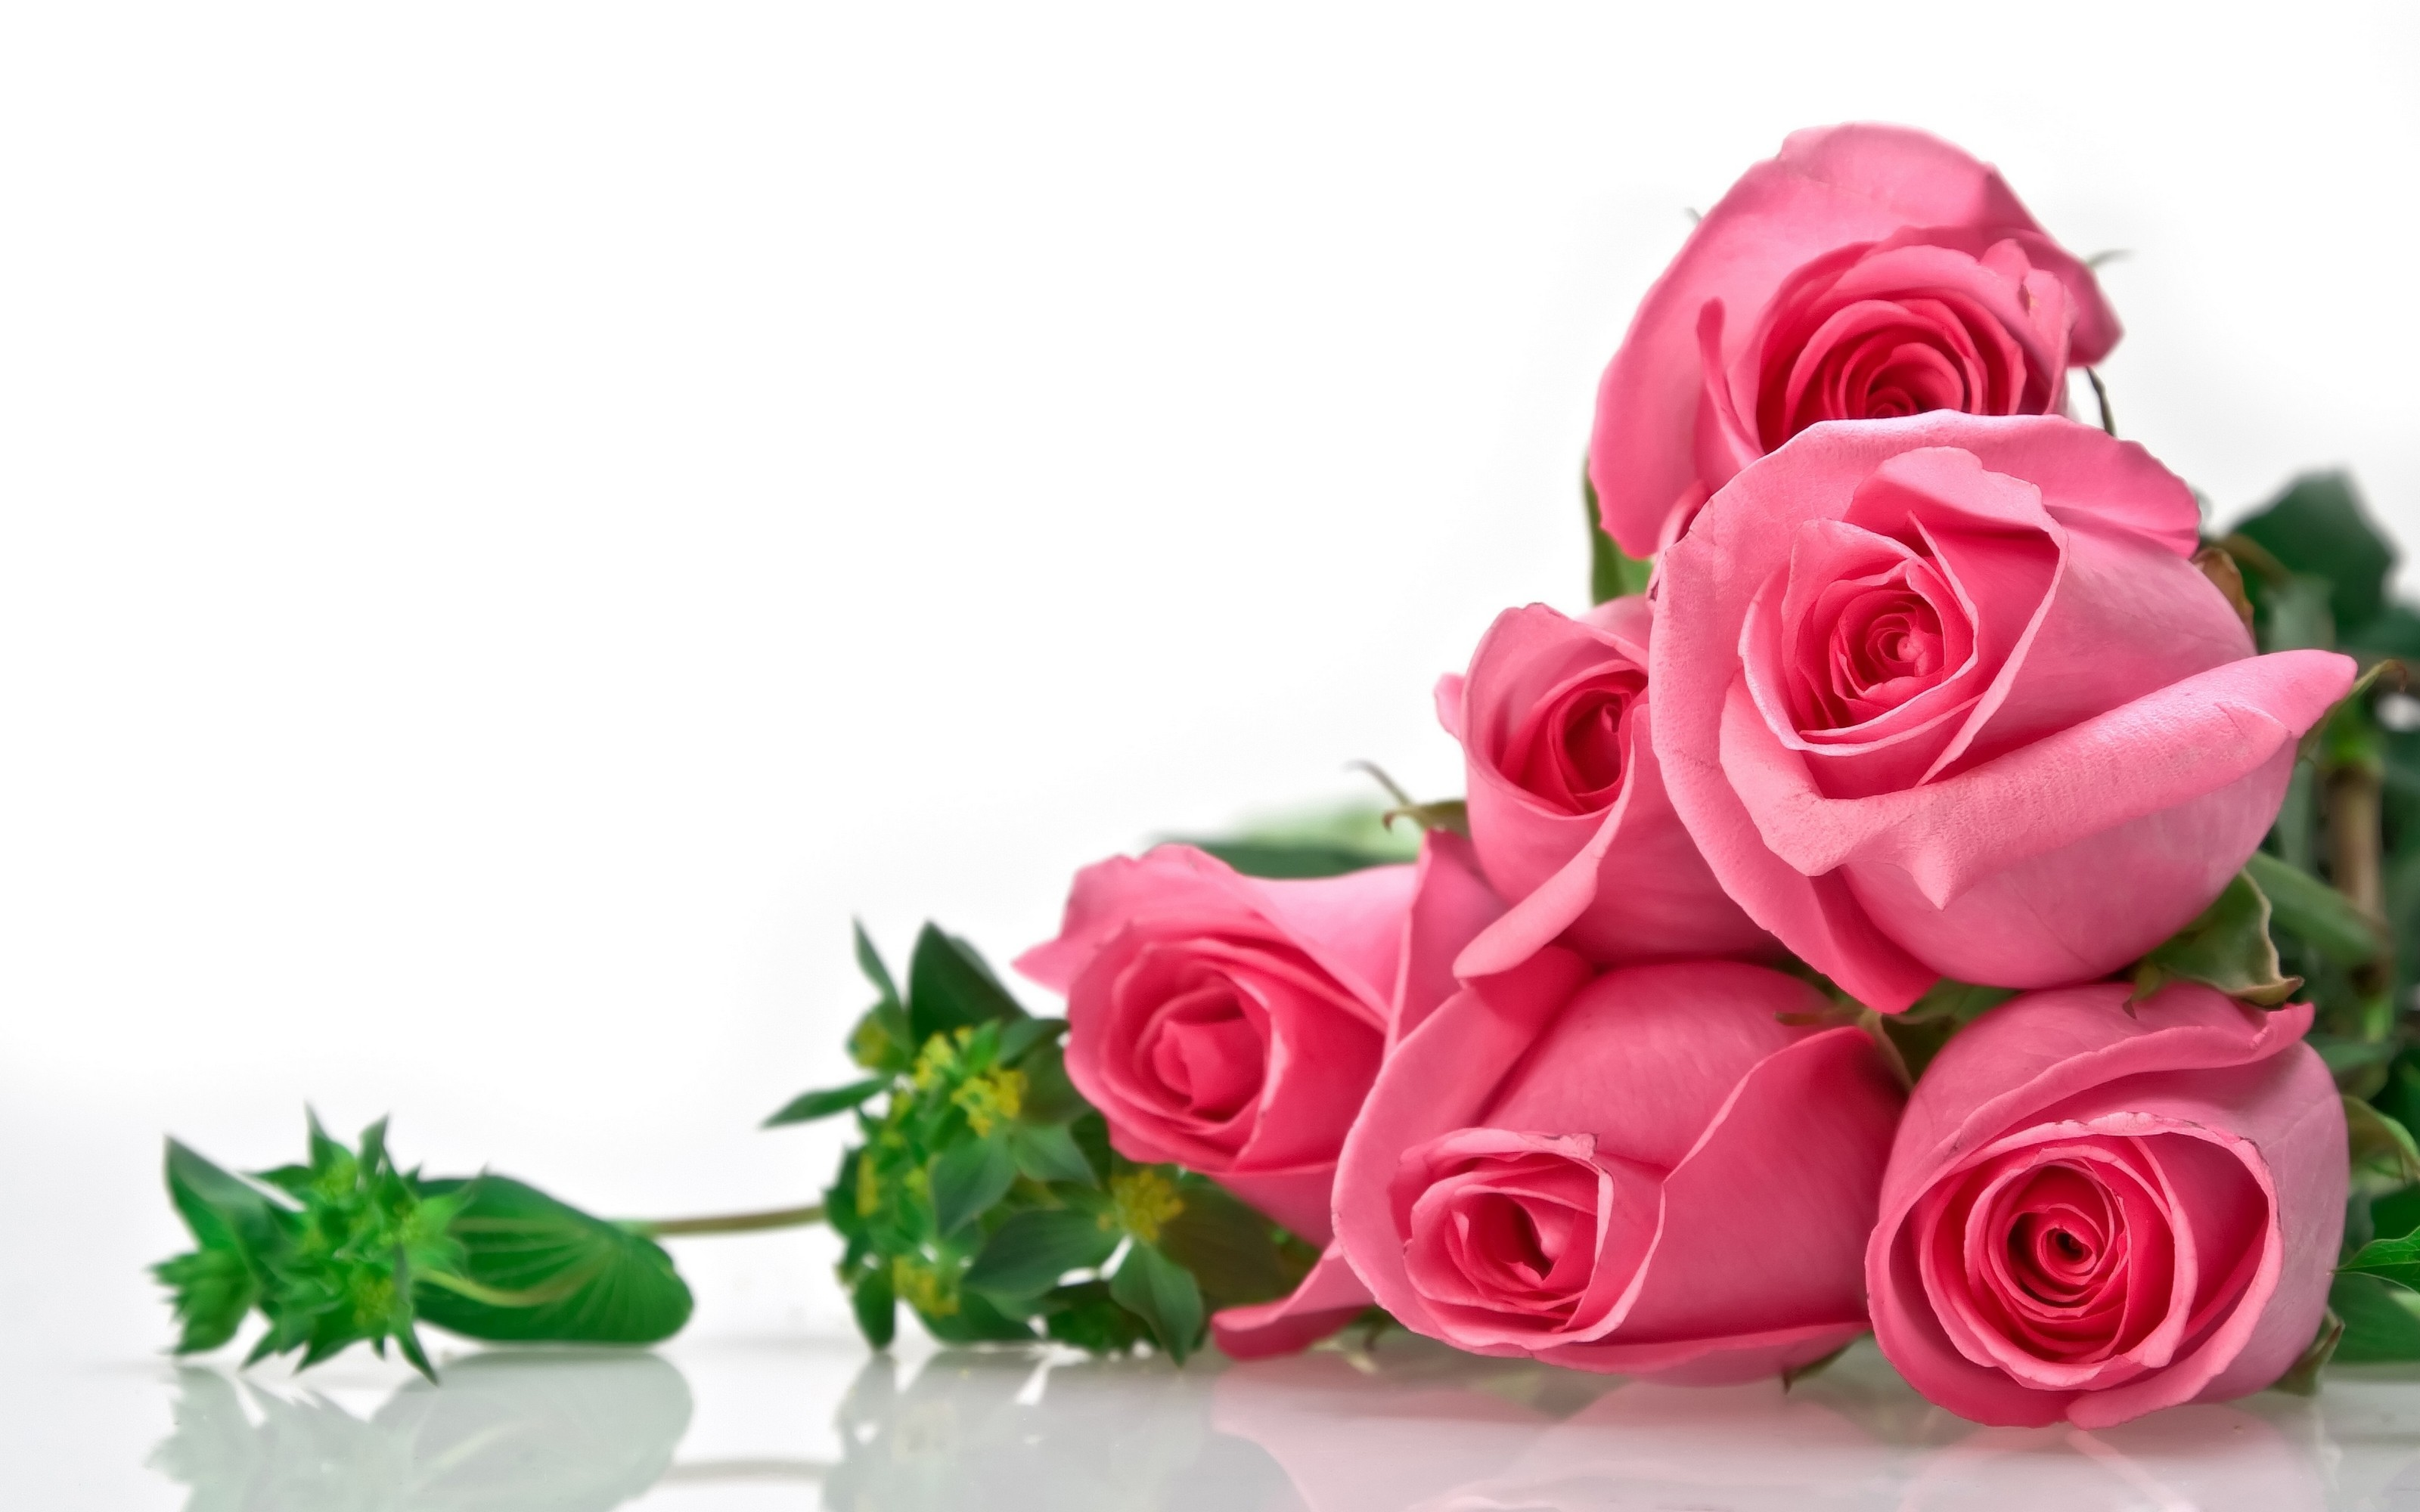 35 Roses Background Wallpaper HD Wallpapers And Photos